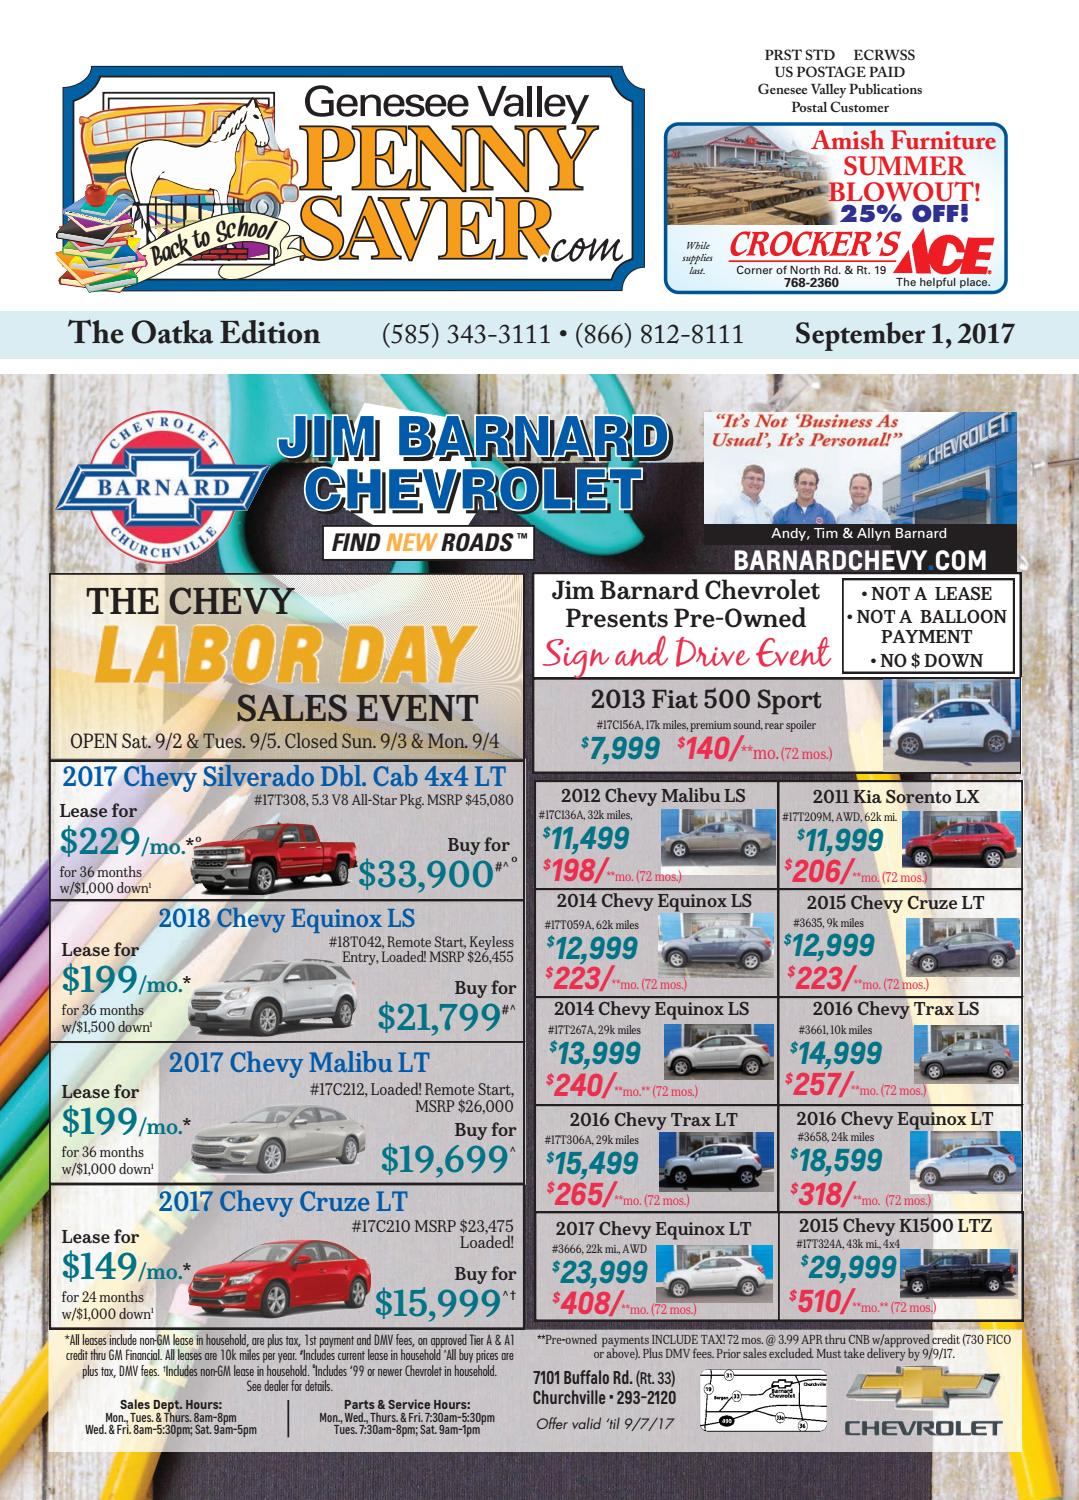 The genesee valley penny saver oatka edition 9117 by genesee the genesee valley penny saver oatka edition 9117 by genesee valley publications issuu fandeluxe Gallery